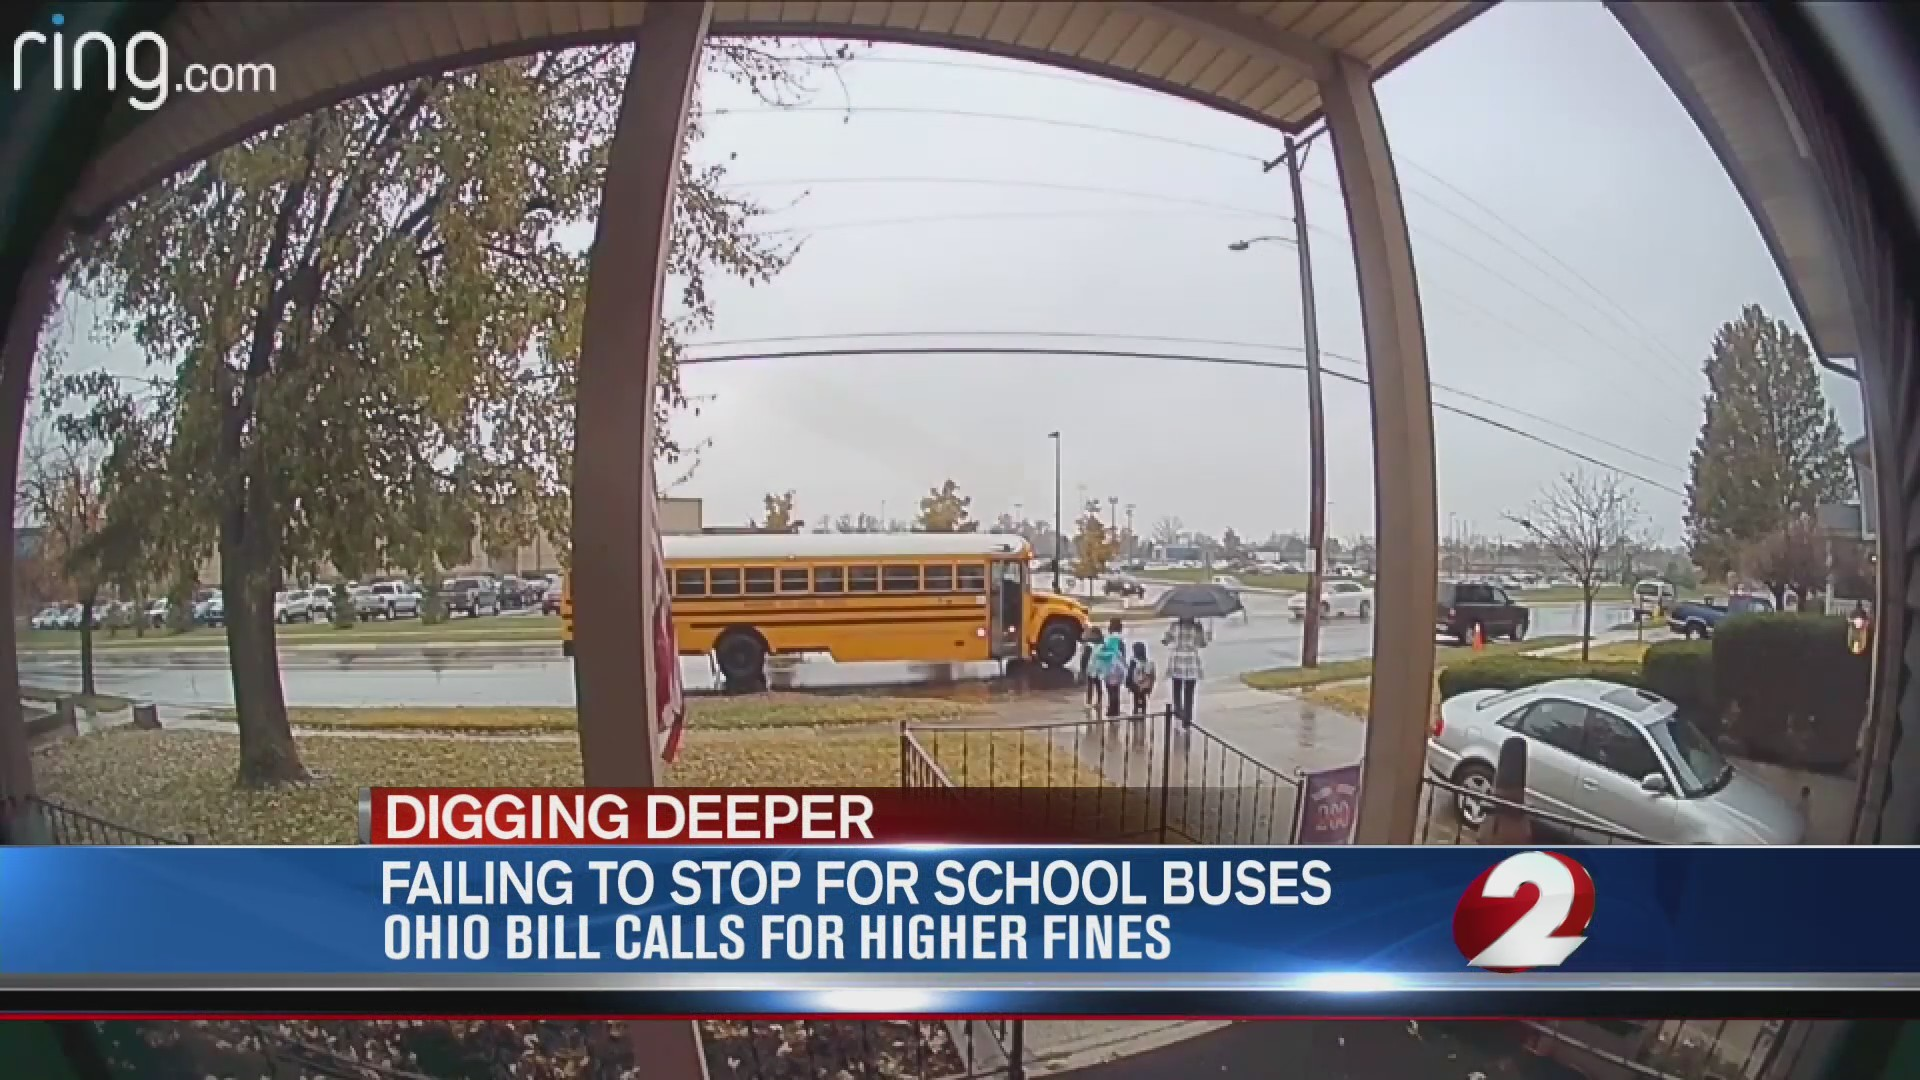 Failing to stop for school buses